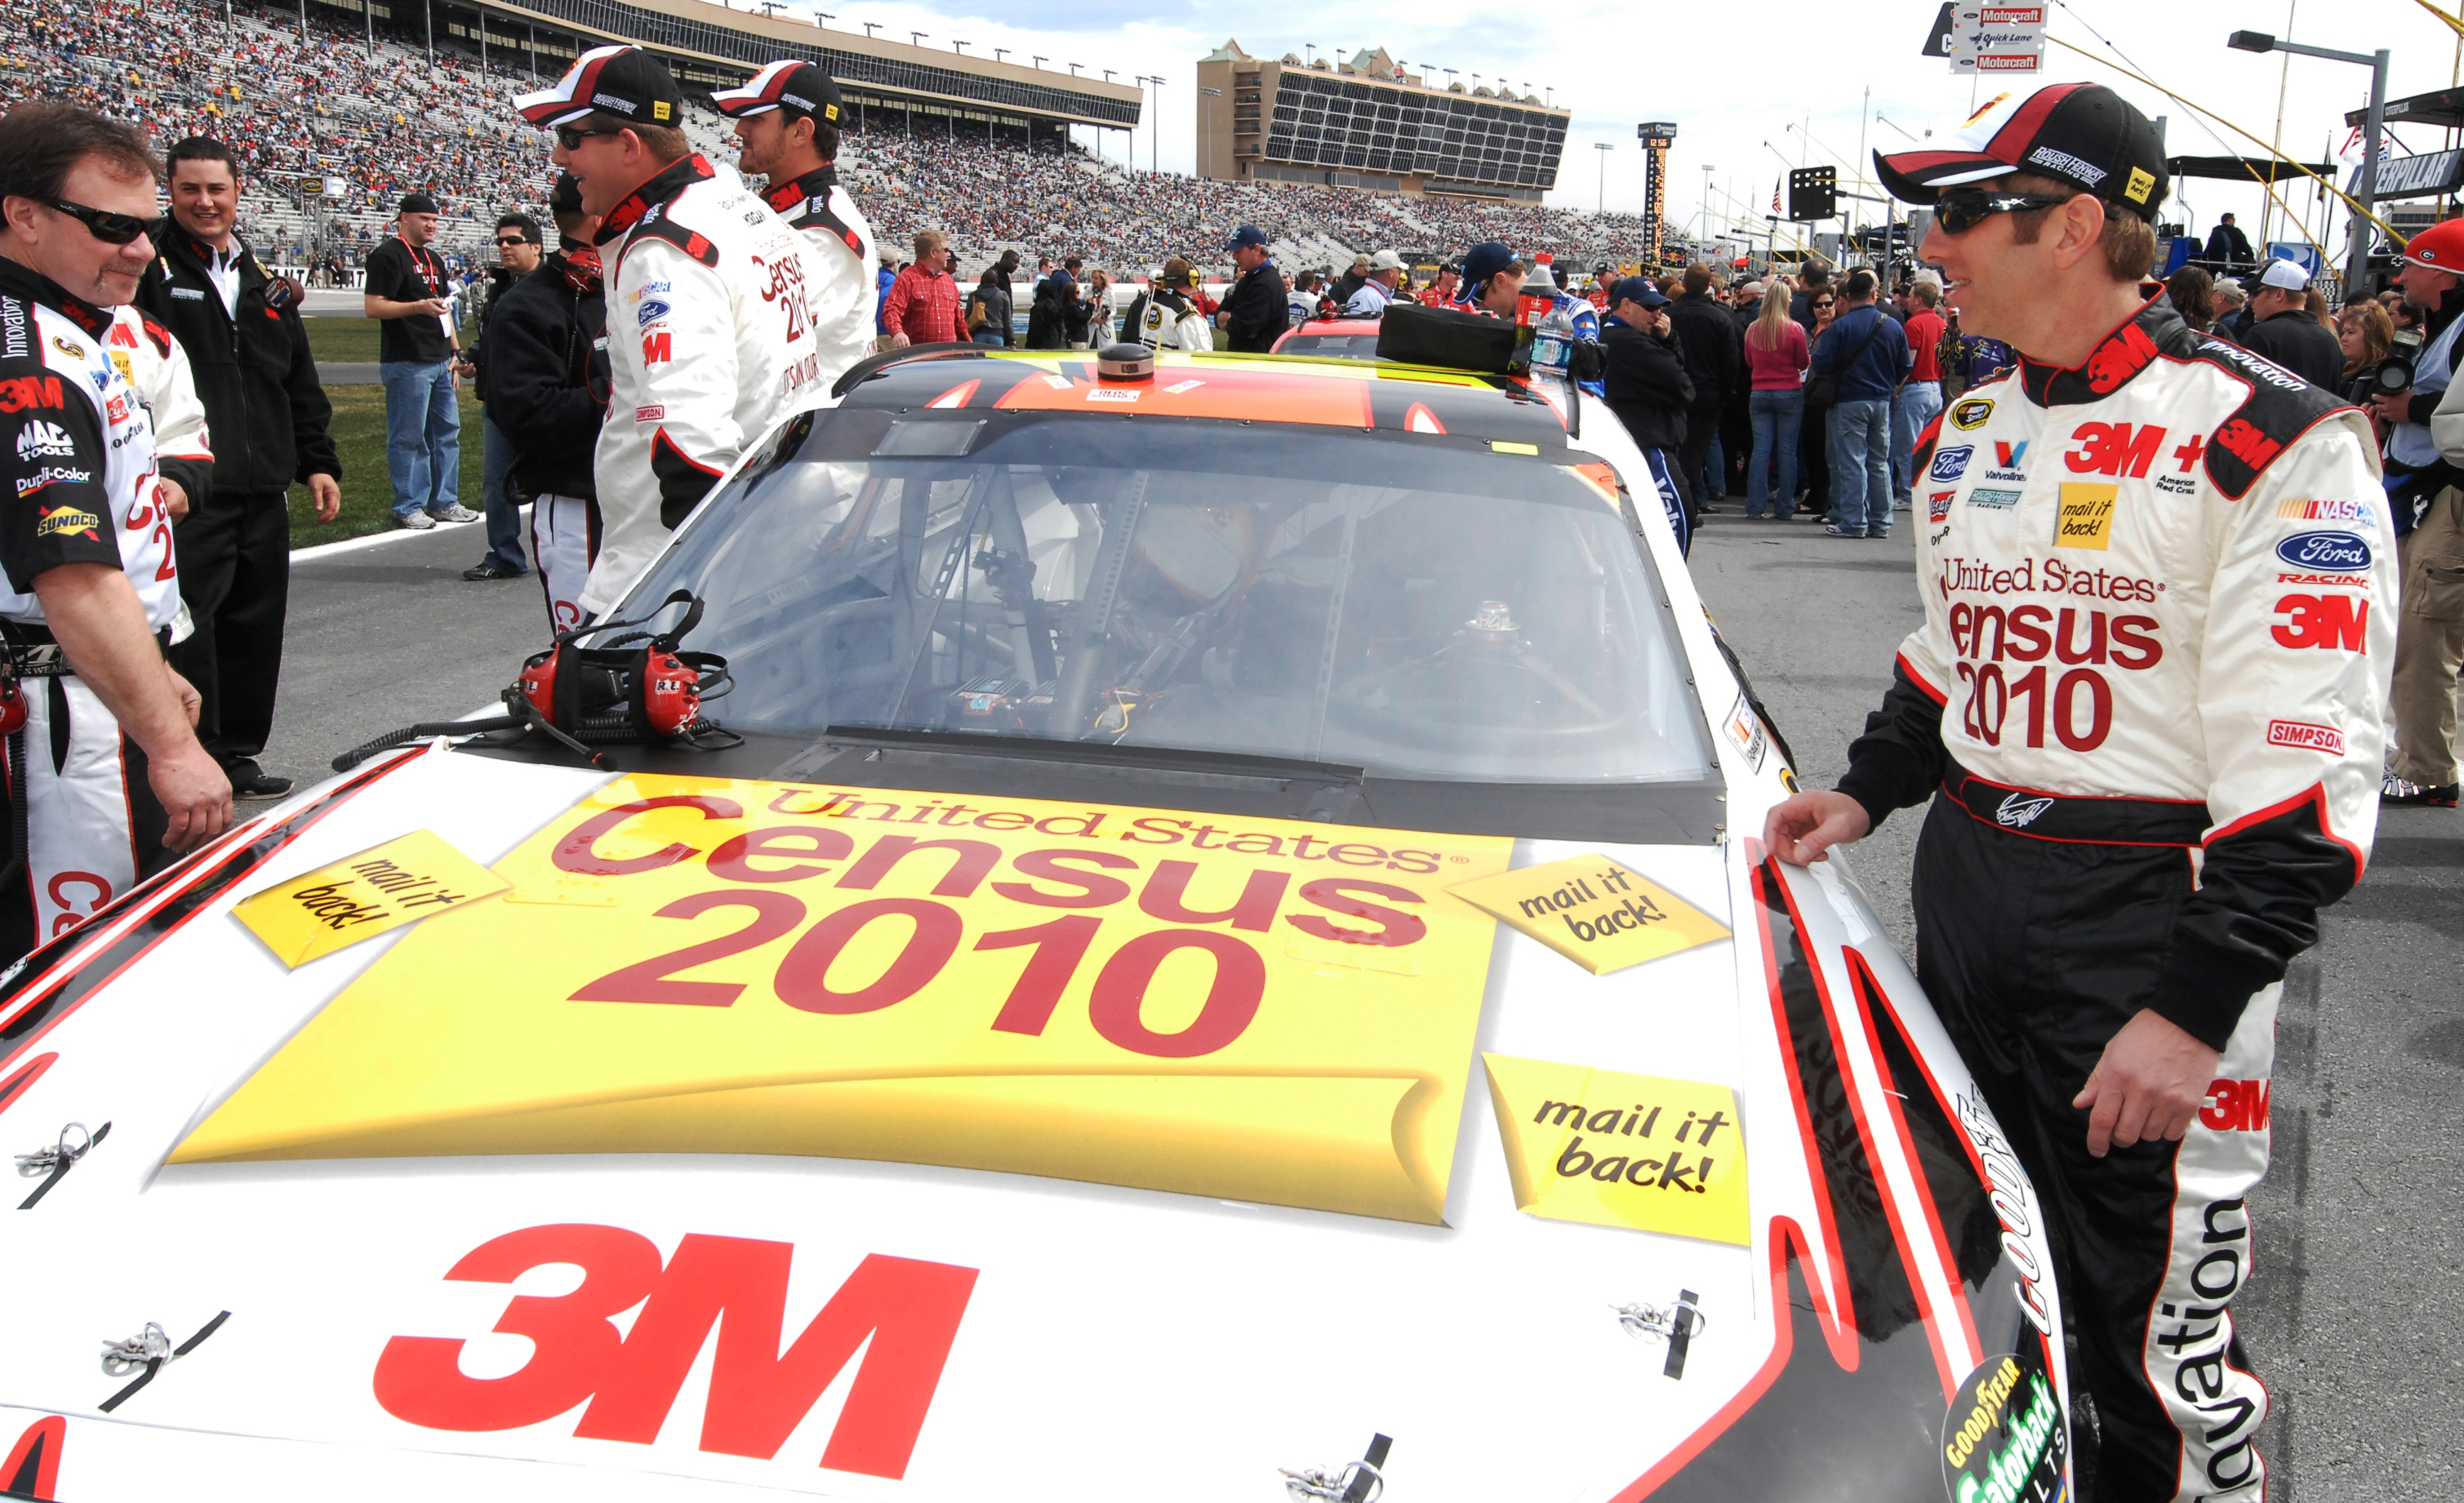 MARCH 7, 2010  HAMPTON, Georgia  Photos from Atlanta Motor Speedway and Census 2010 NASCAR vehicle driven by Greg Biffle. Kent D. Johnson, kdjohnson@ajc.com